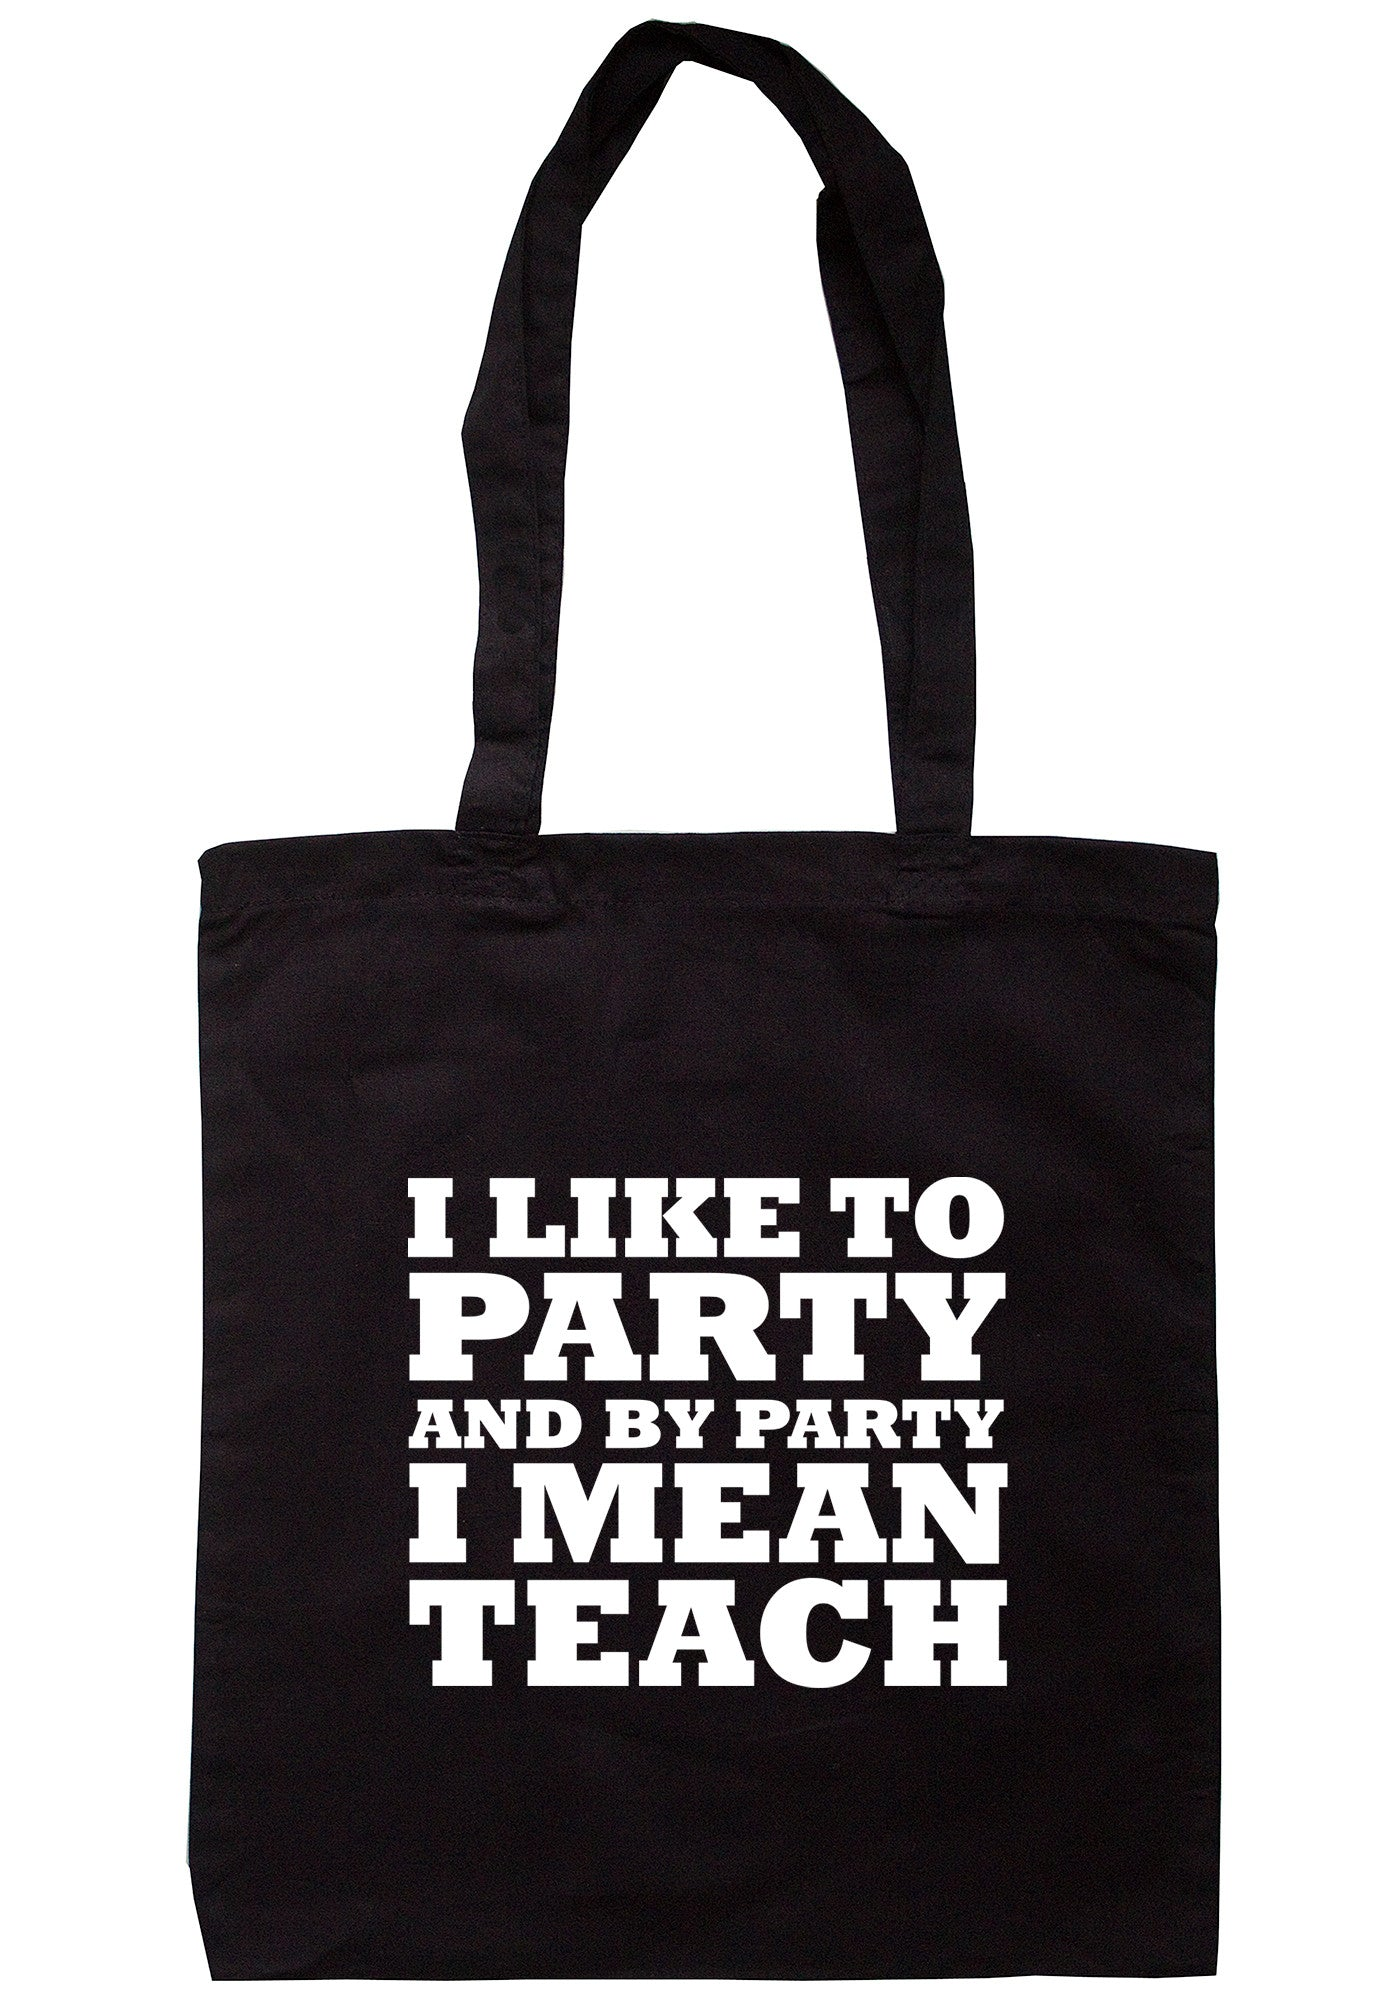 I Like To Party And By Party I Mean Teach Tote Bag TB0619 - Illustrated Identity Ltd.